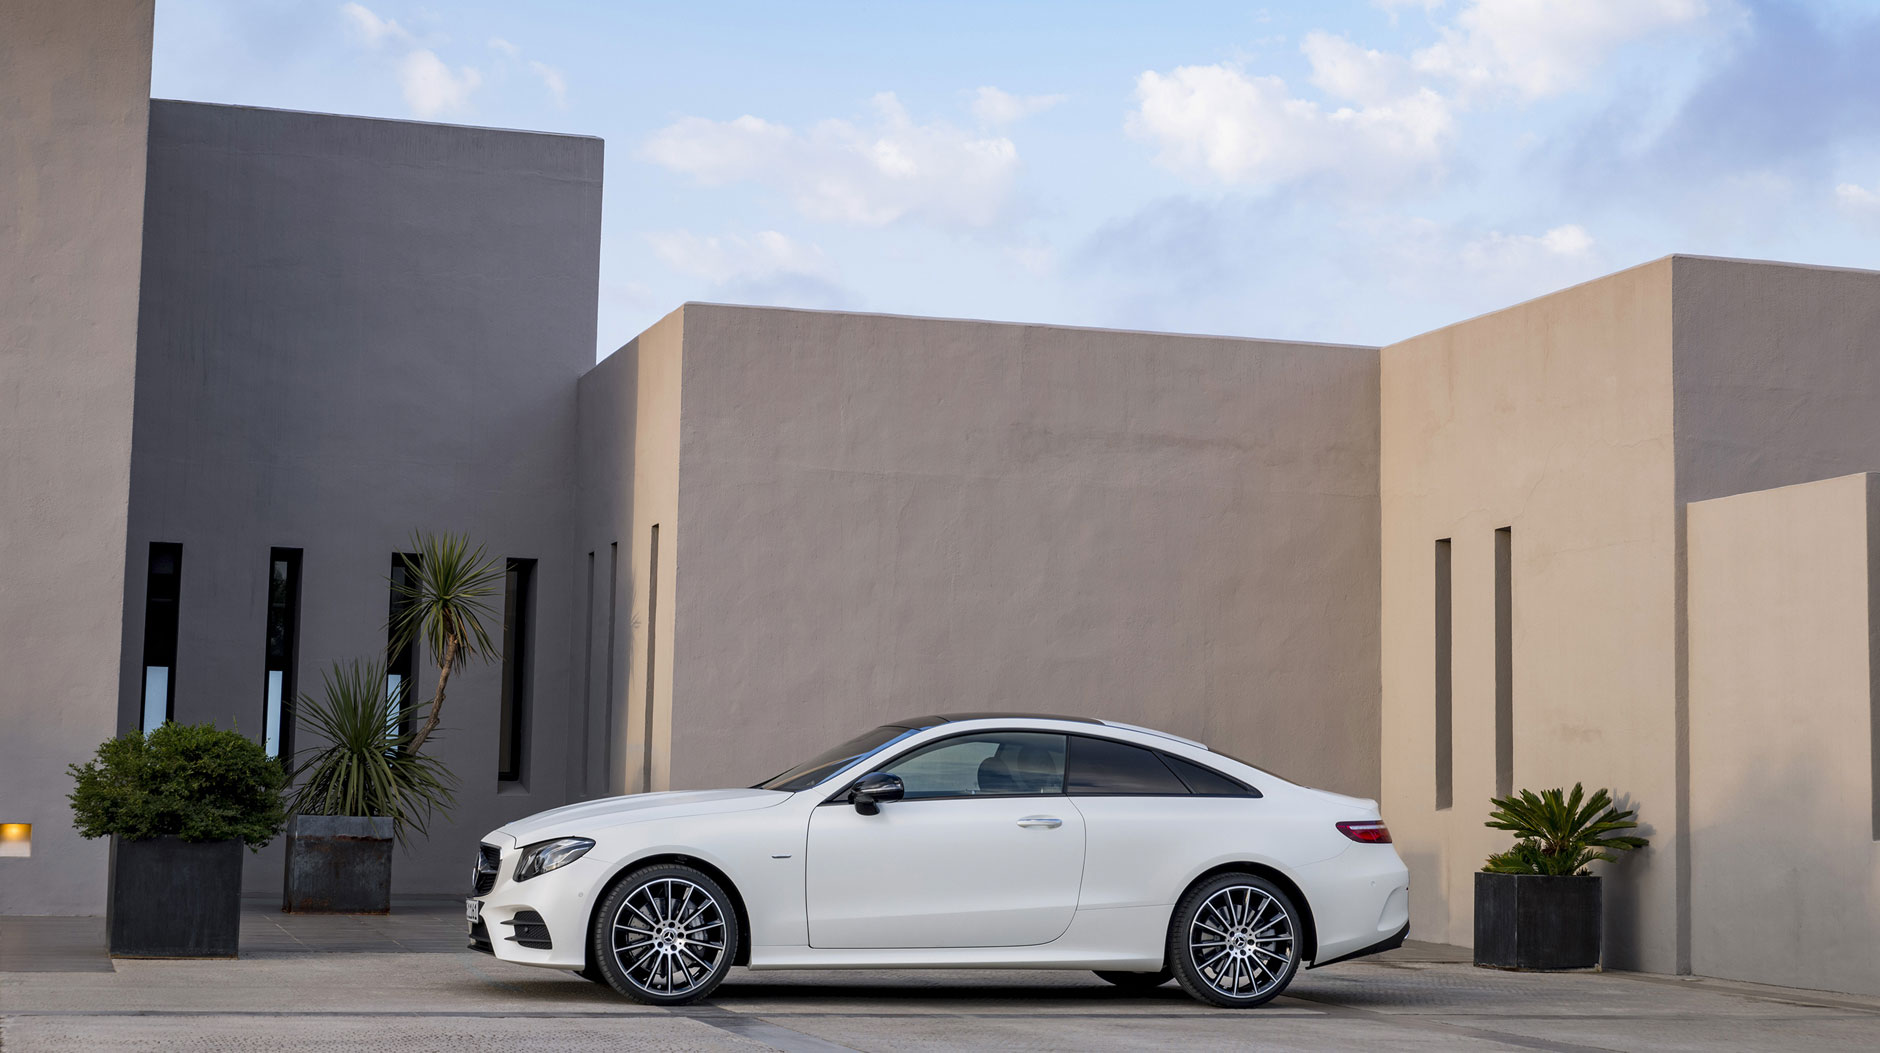 mercedes e-class coupe added 6/20/17